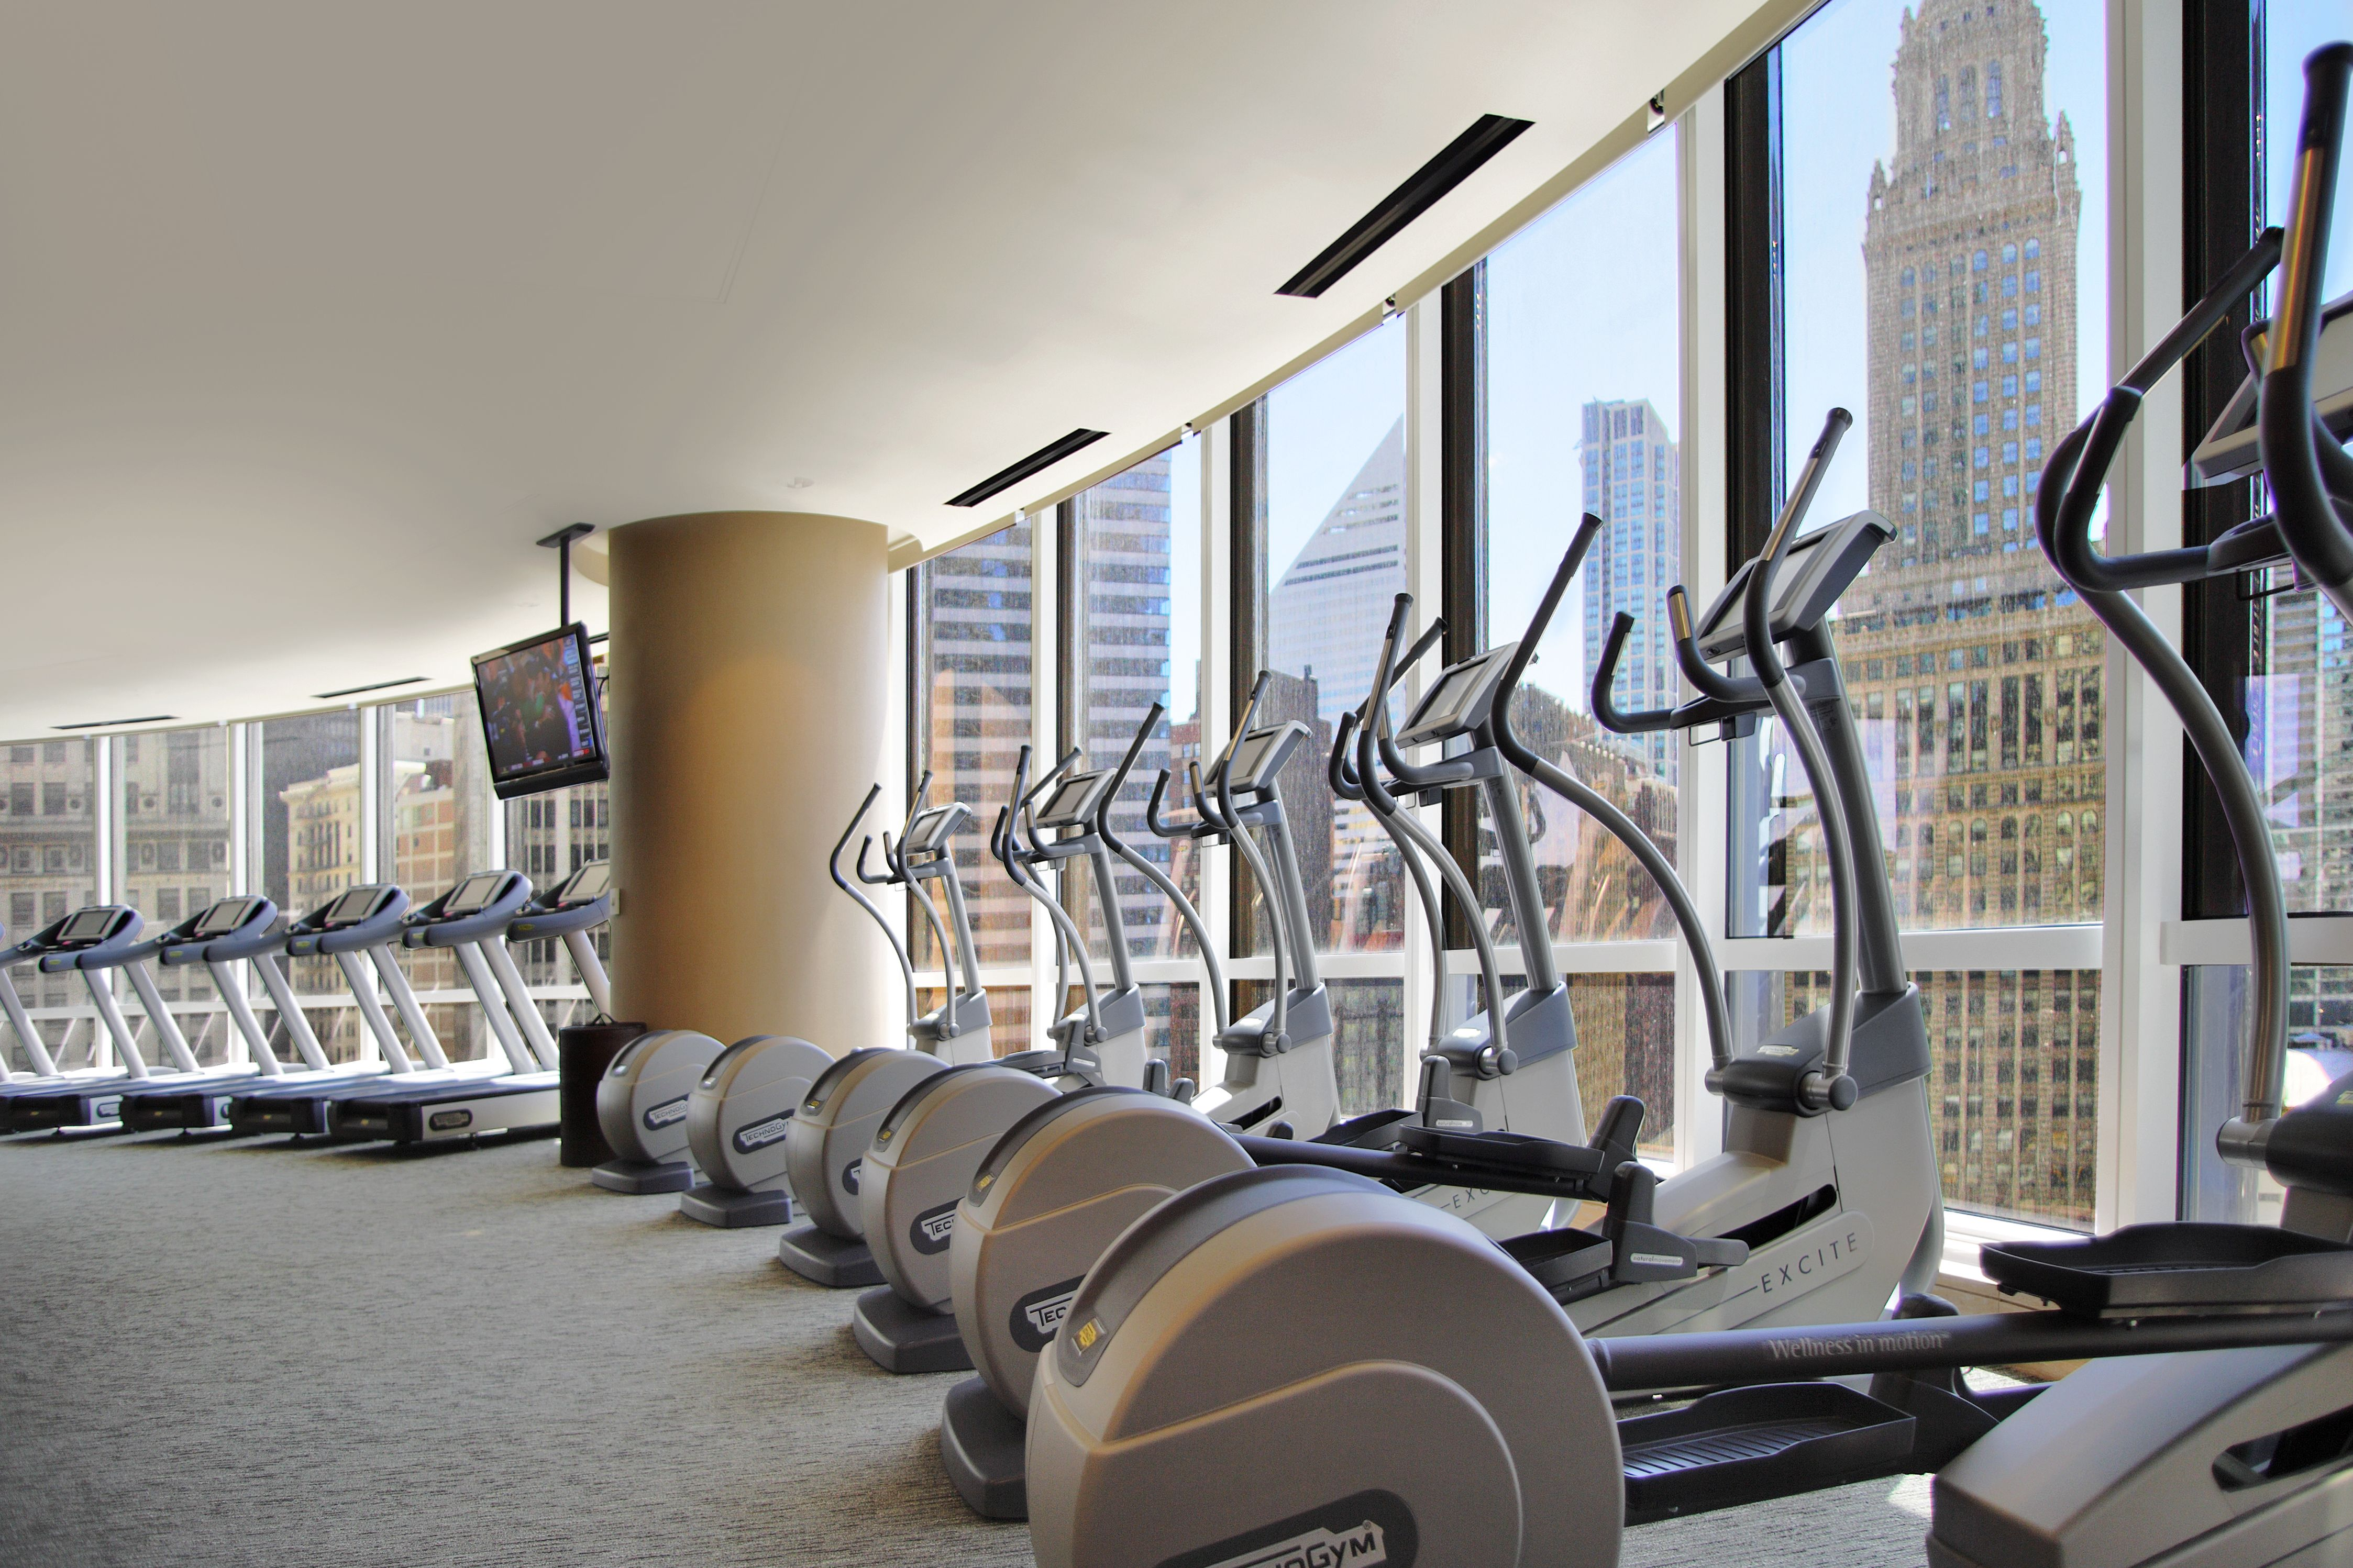 Cardio Equipment Fitness Center